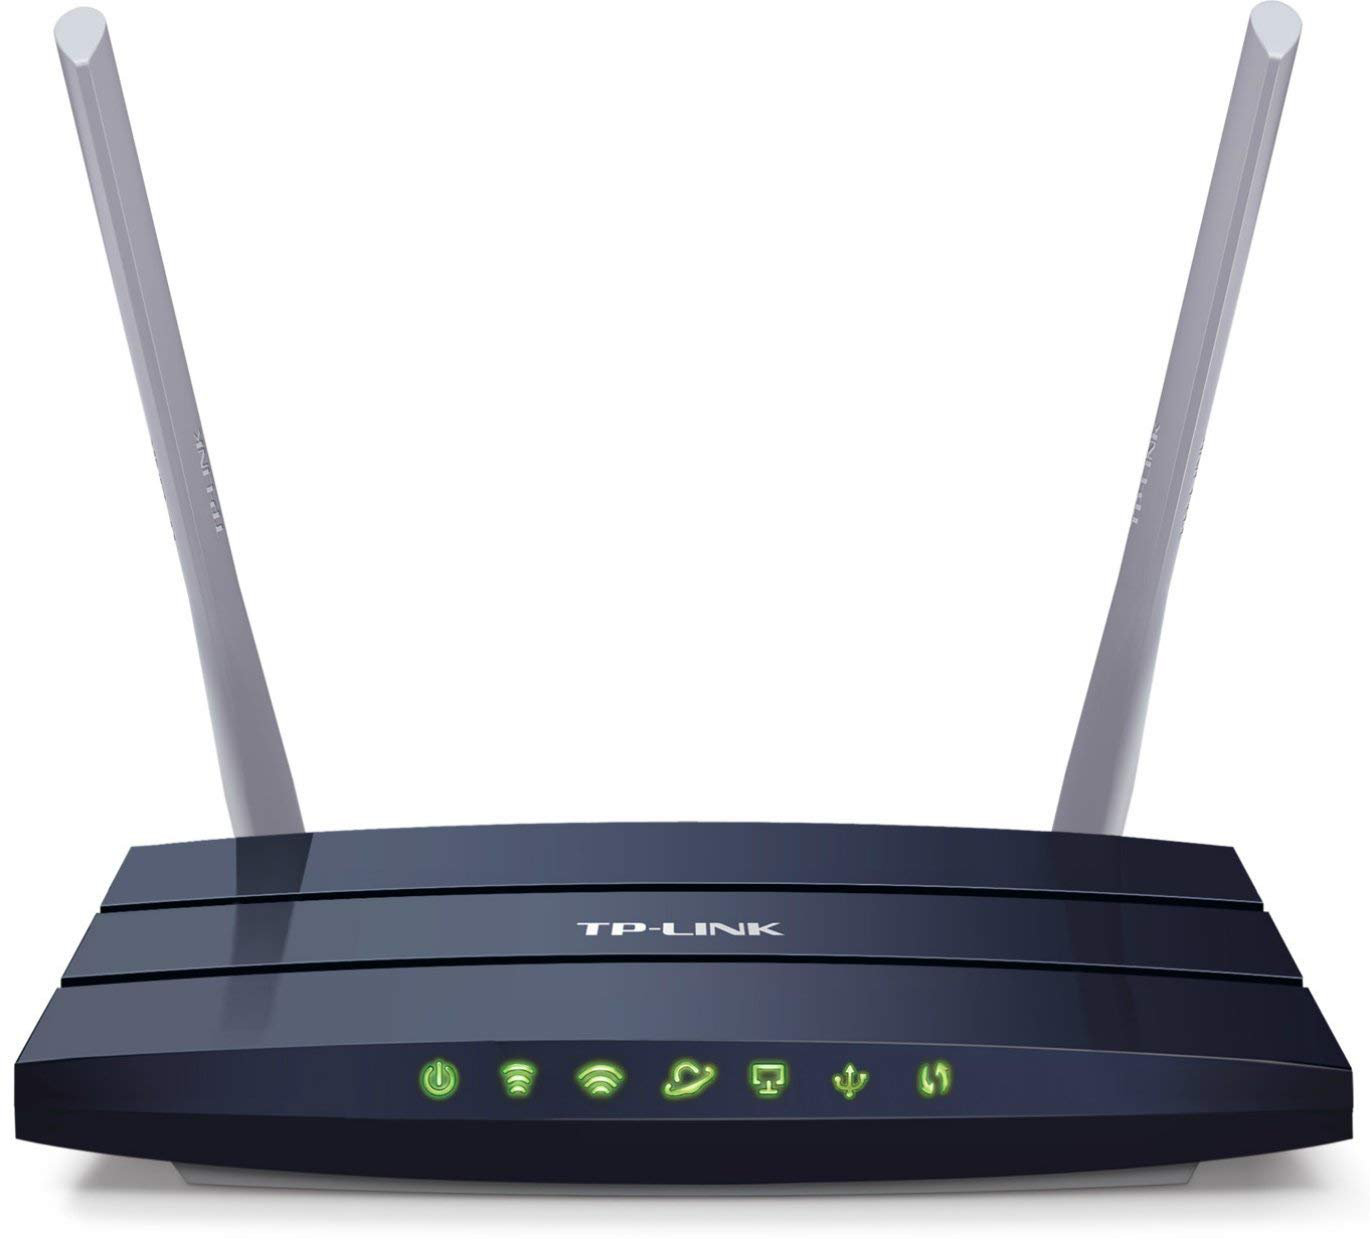 TP-Link Archer AC1200 wifi router